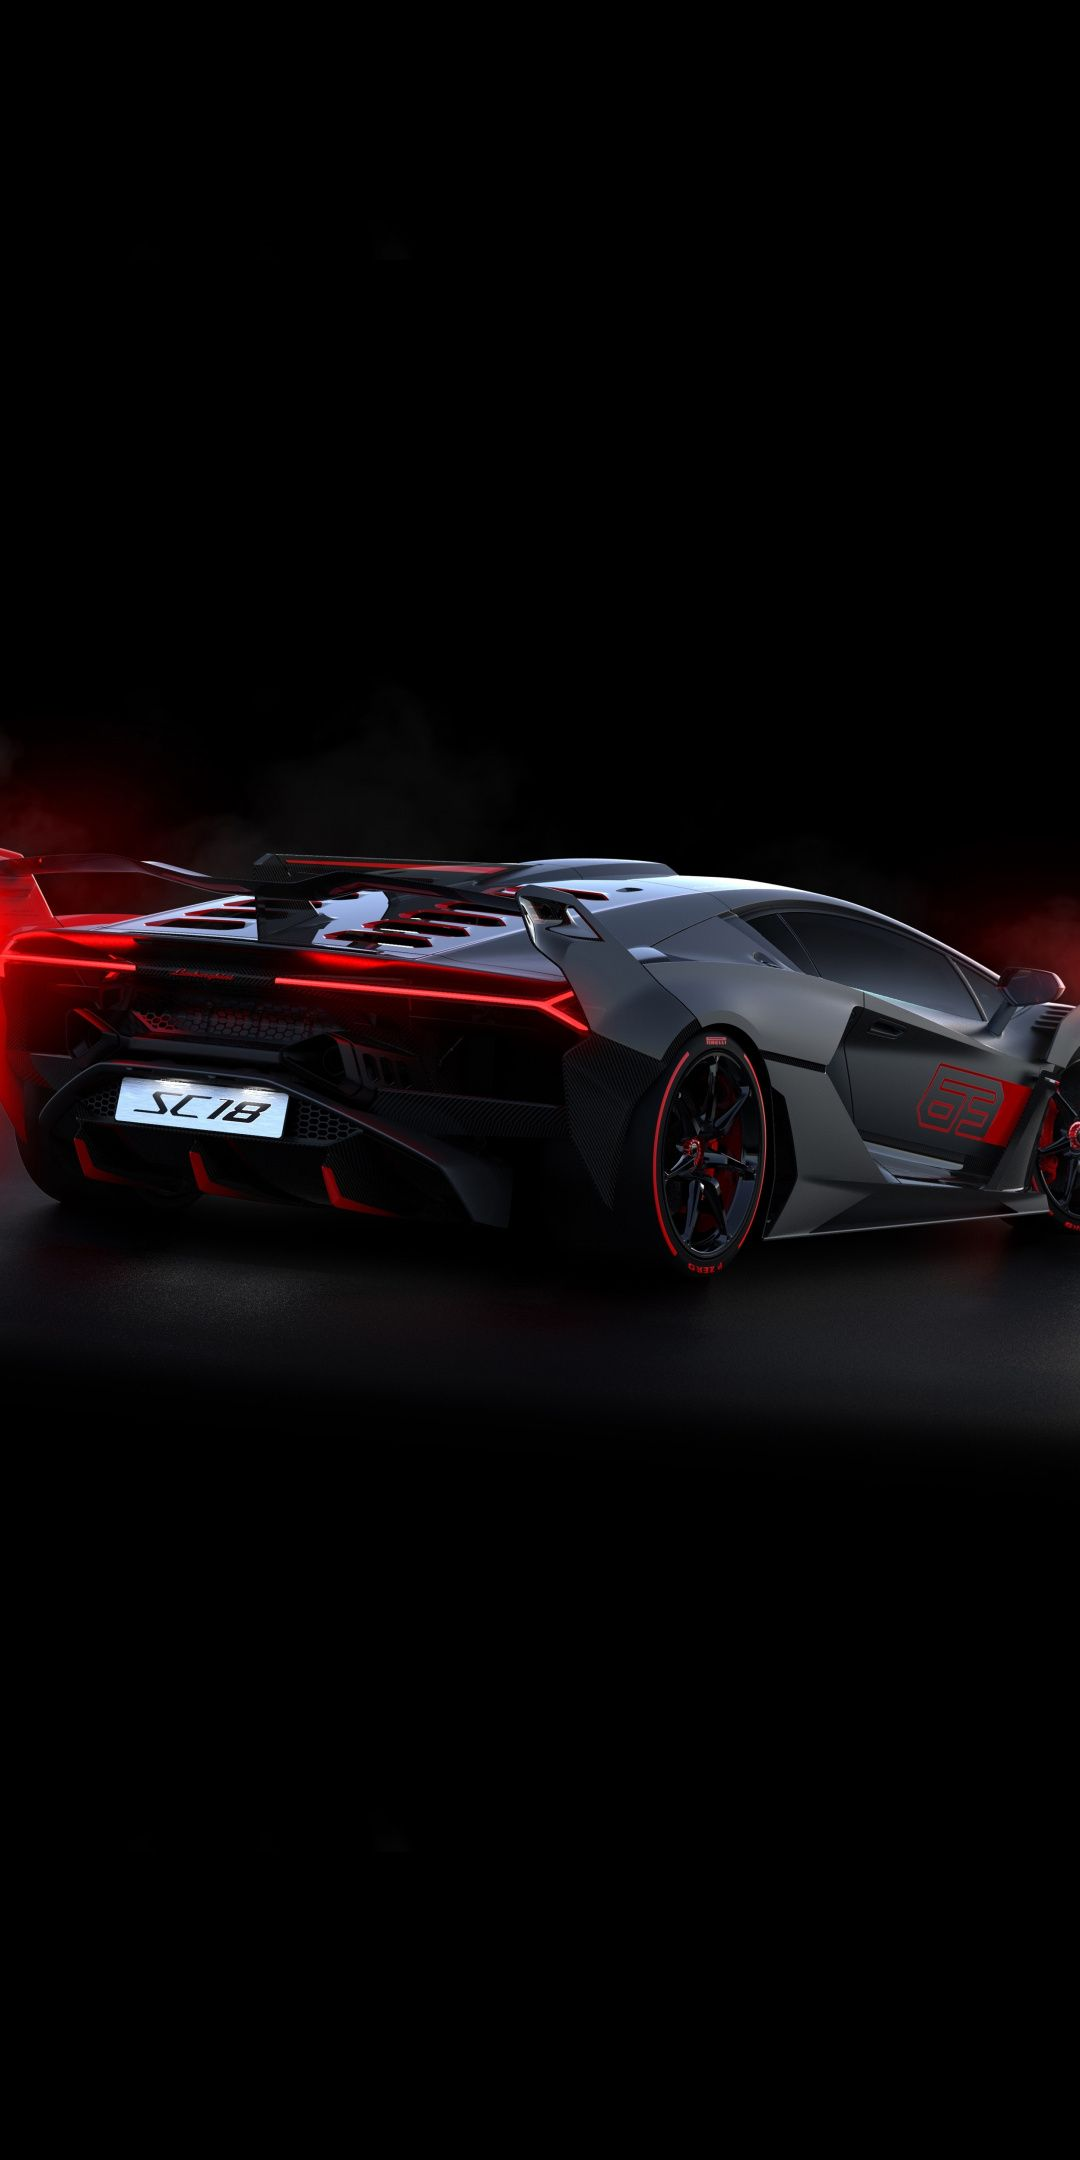 Side view lamborghini sc18 sports car 2018 1080x2160 wallpaper car wallpapers lamborghini - Car side view wallpaper ...